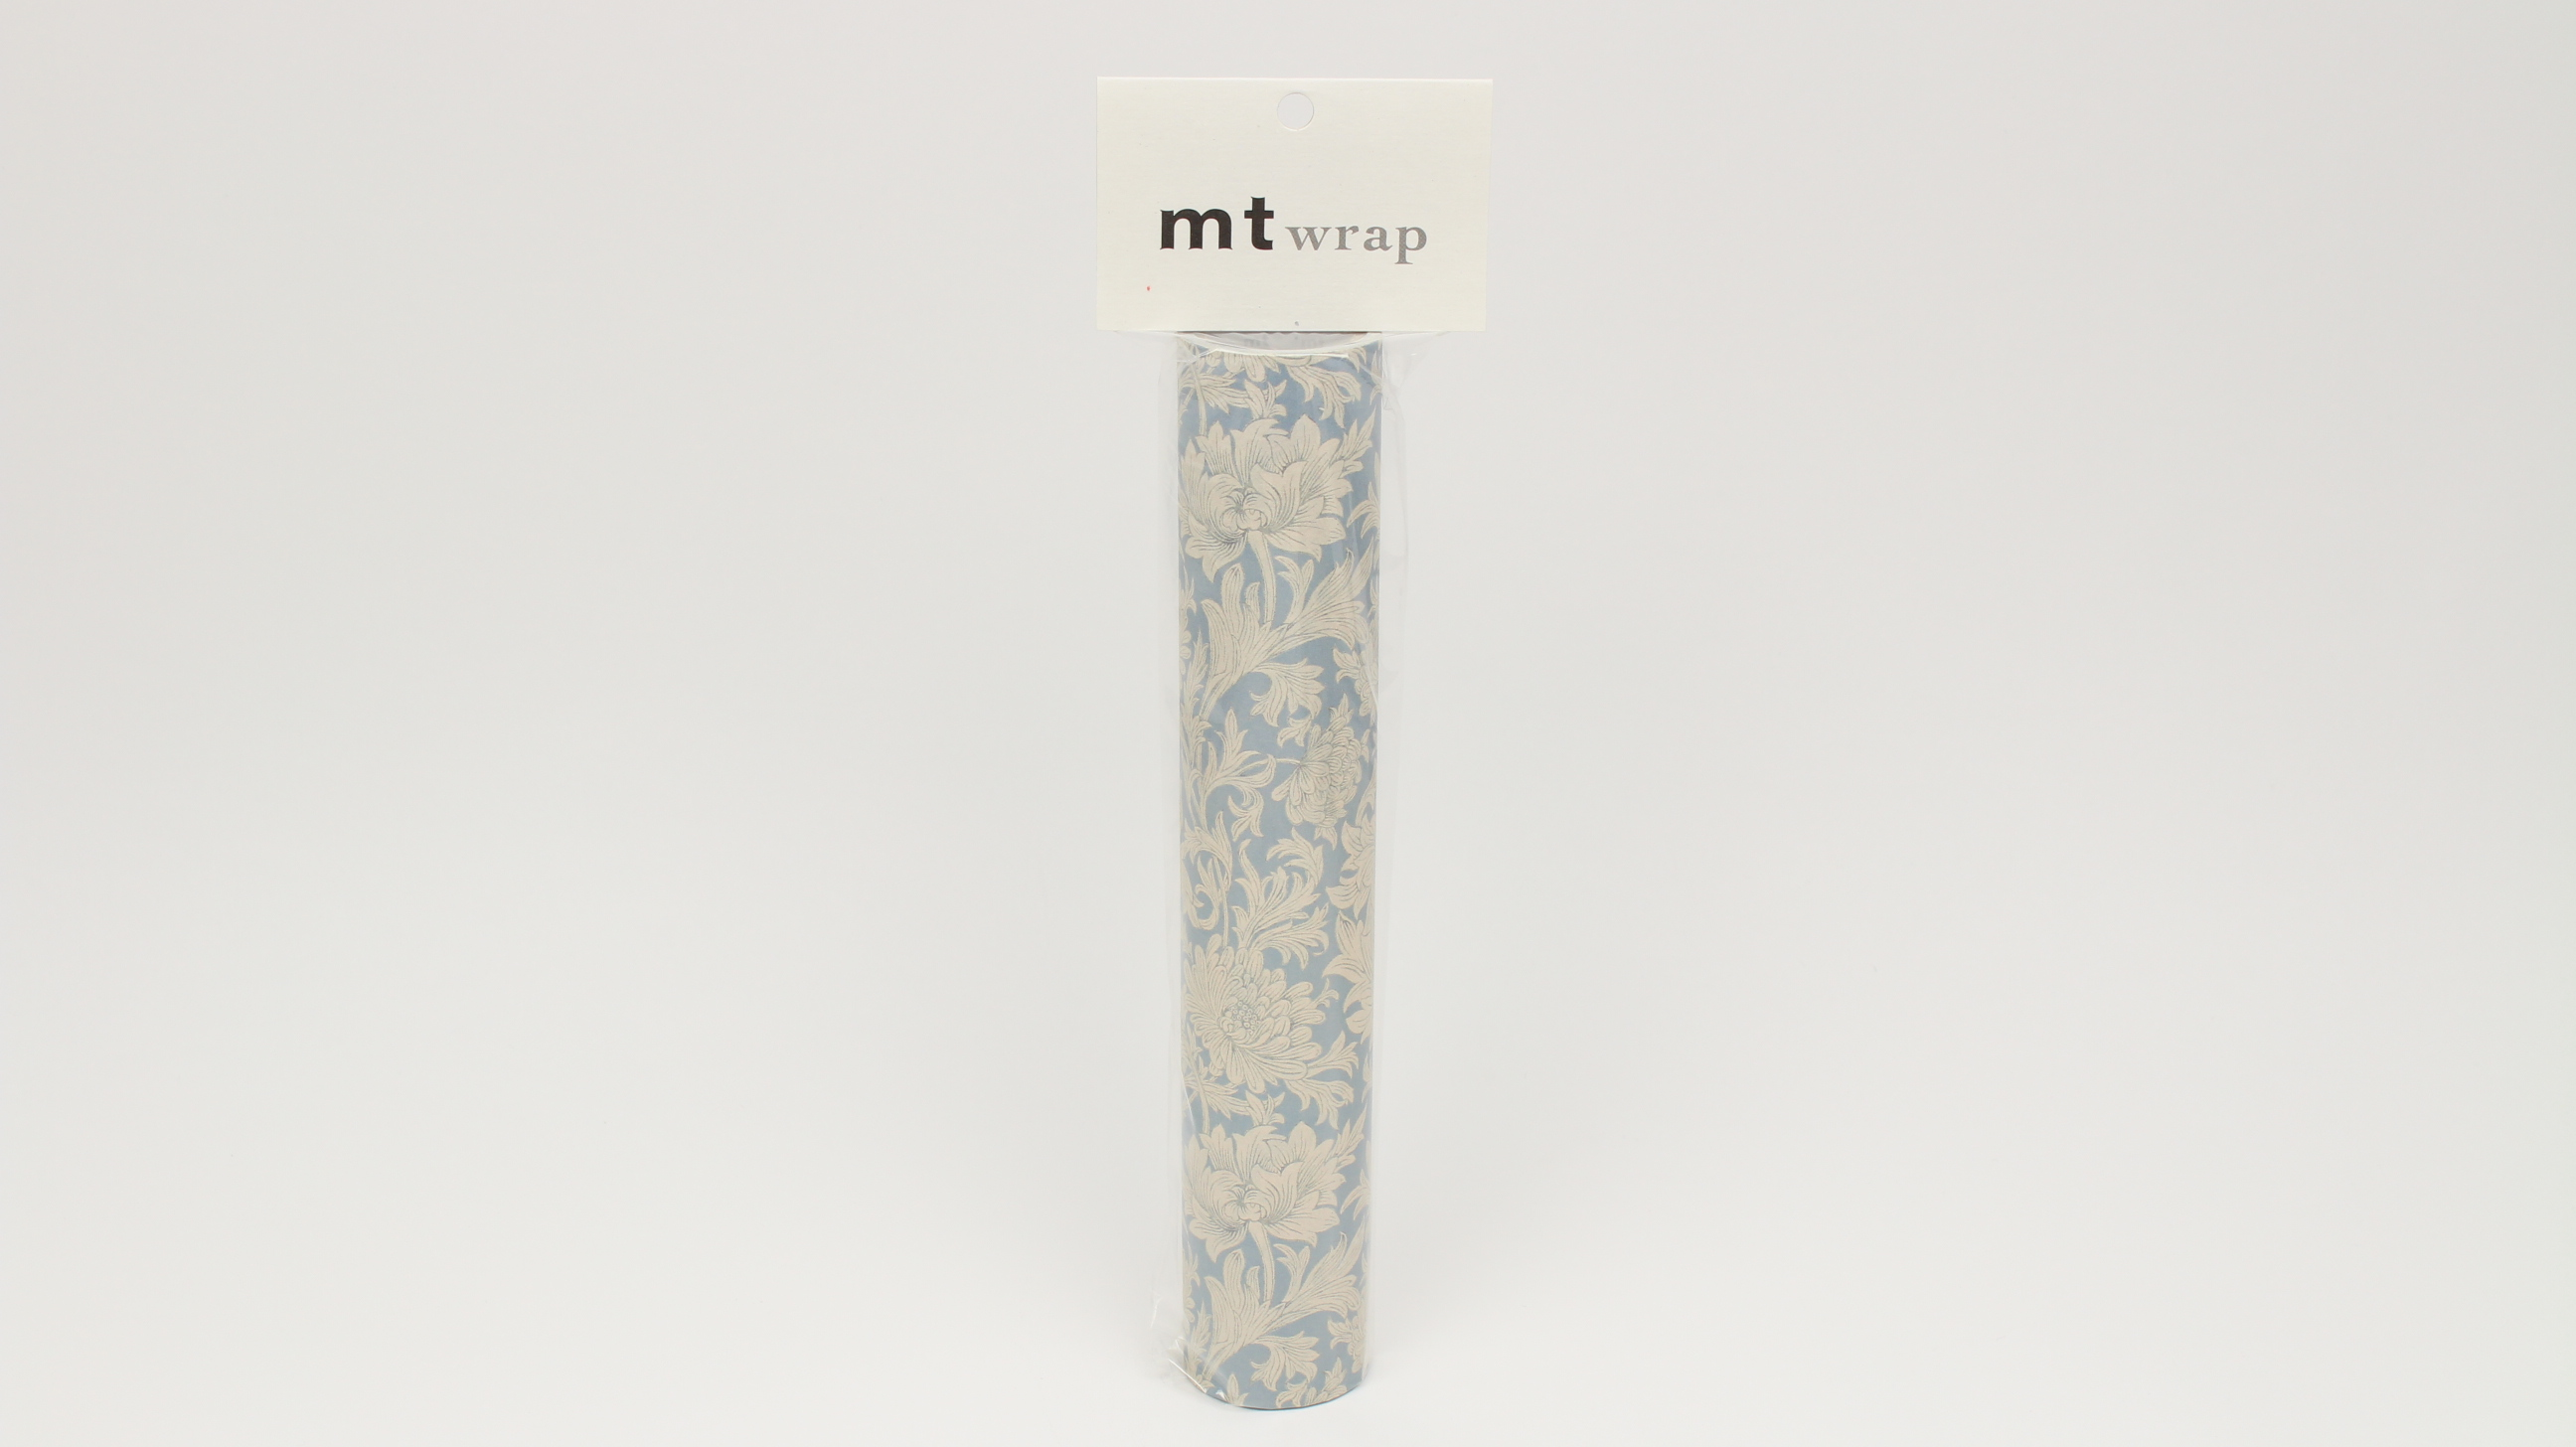 mt wrap 詰替 WM Chrysanthemum Toile